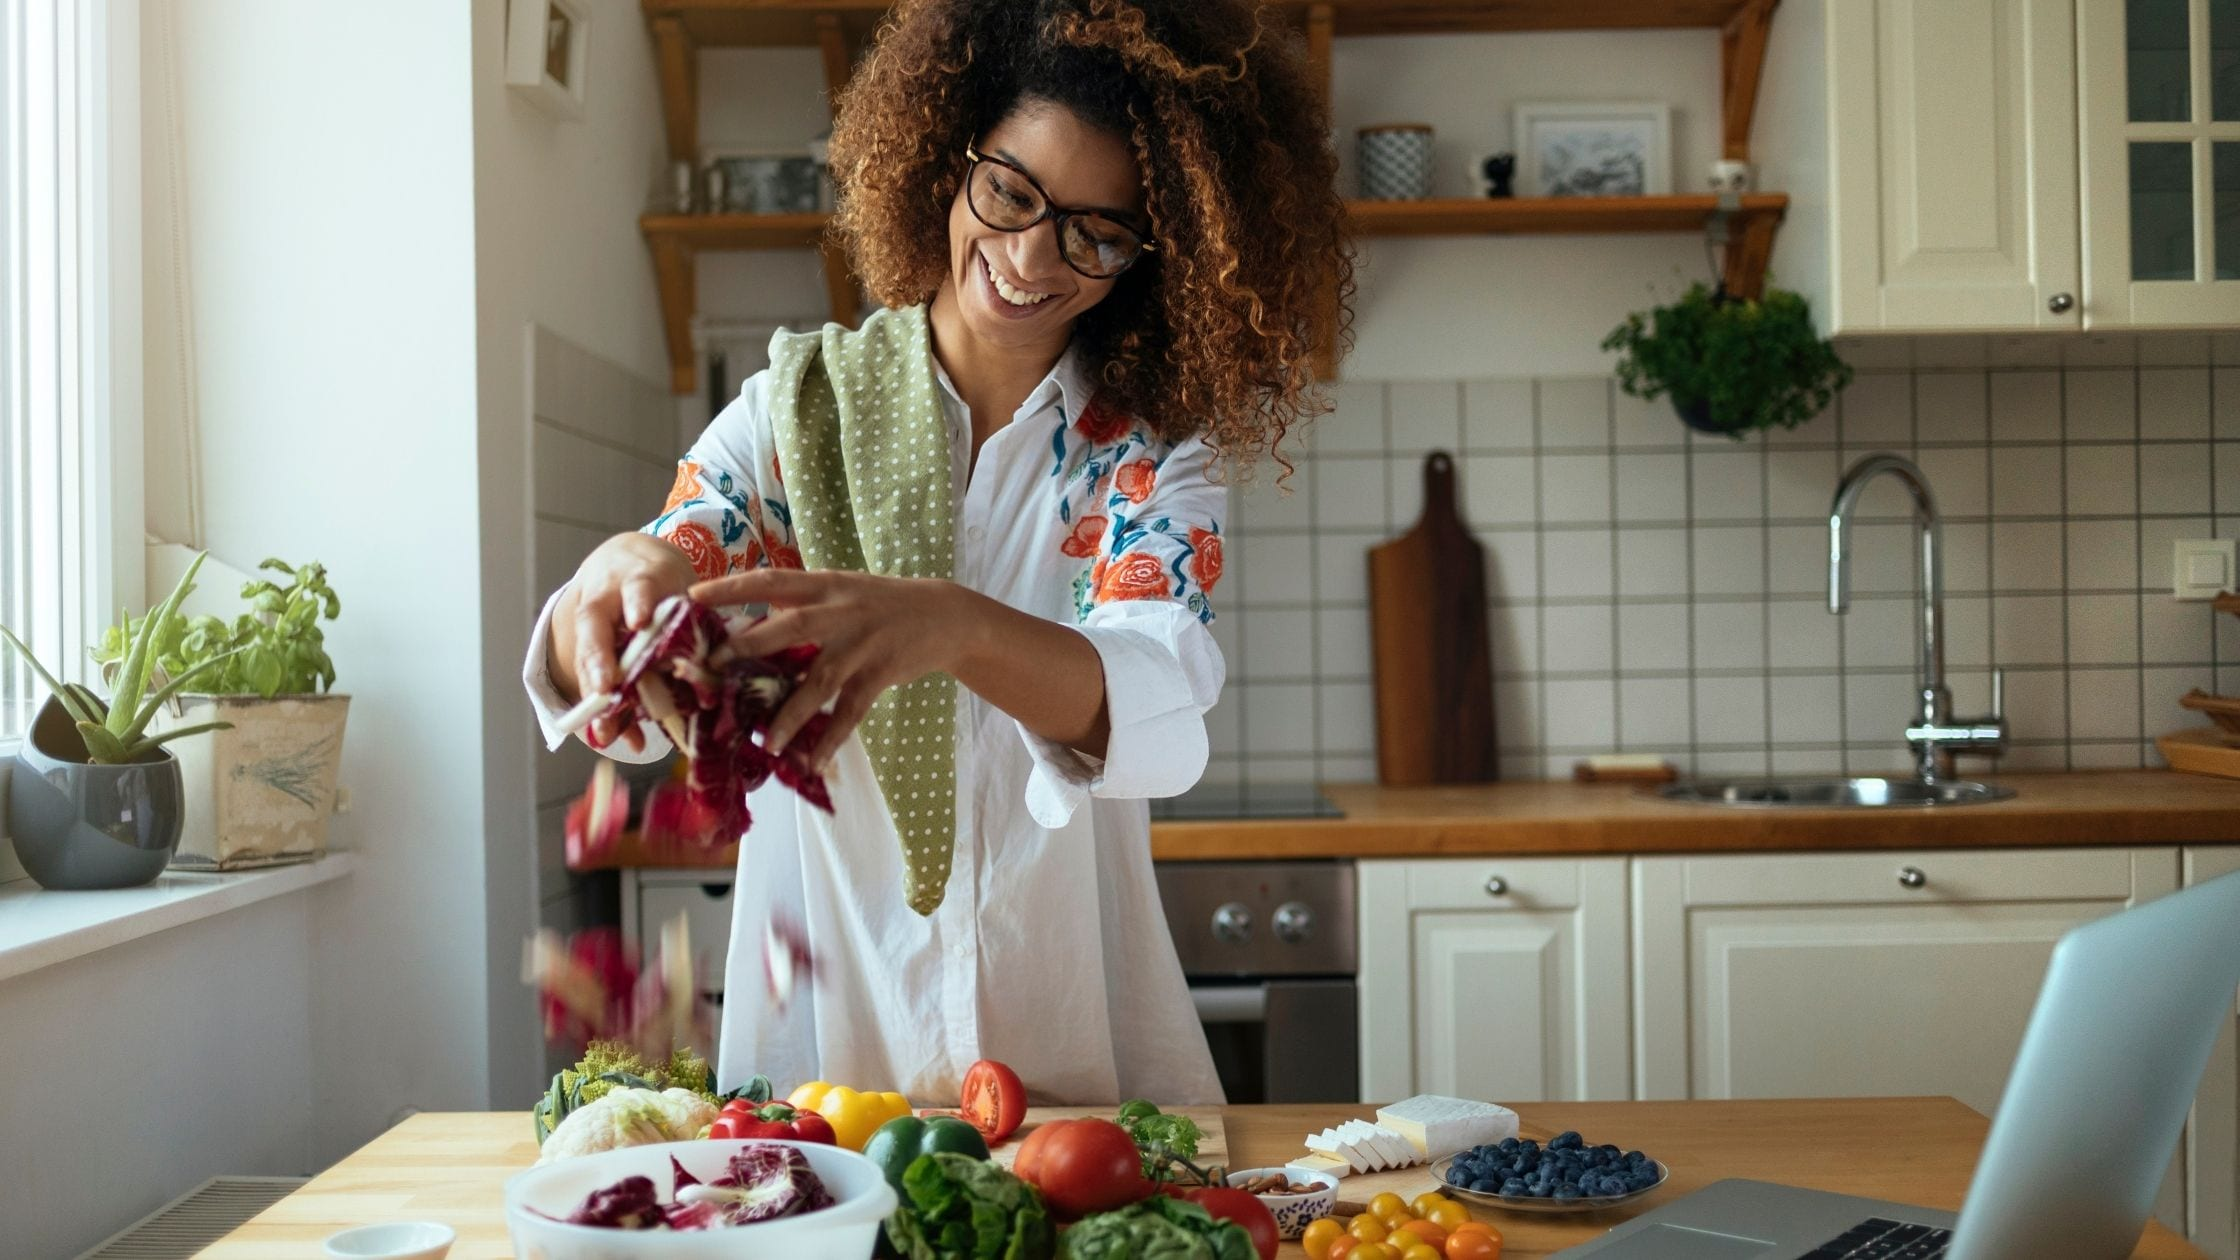 These 5 Habits are Essential to Healthy Living